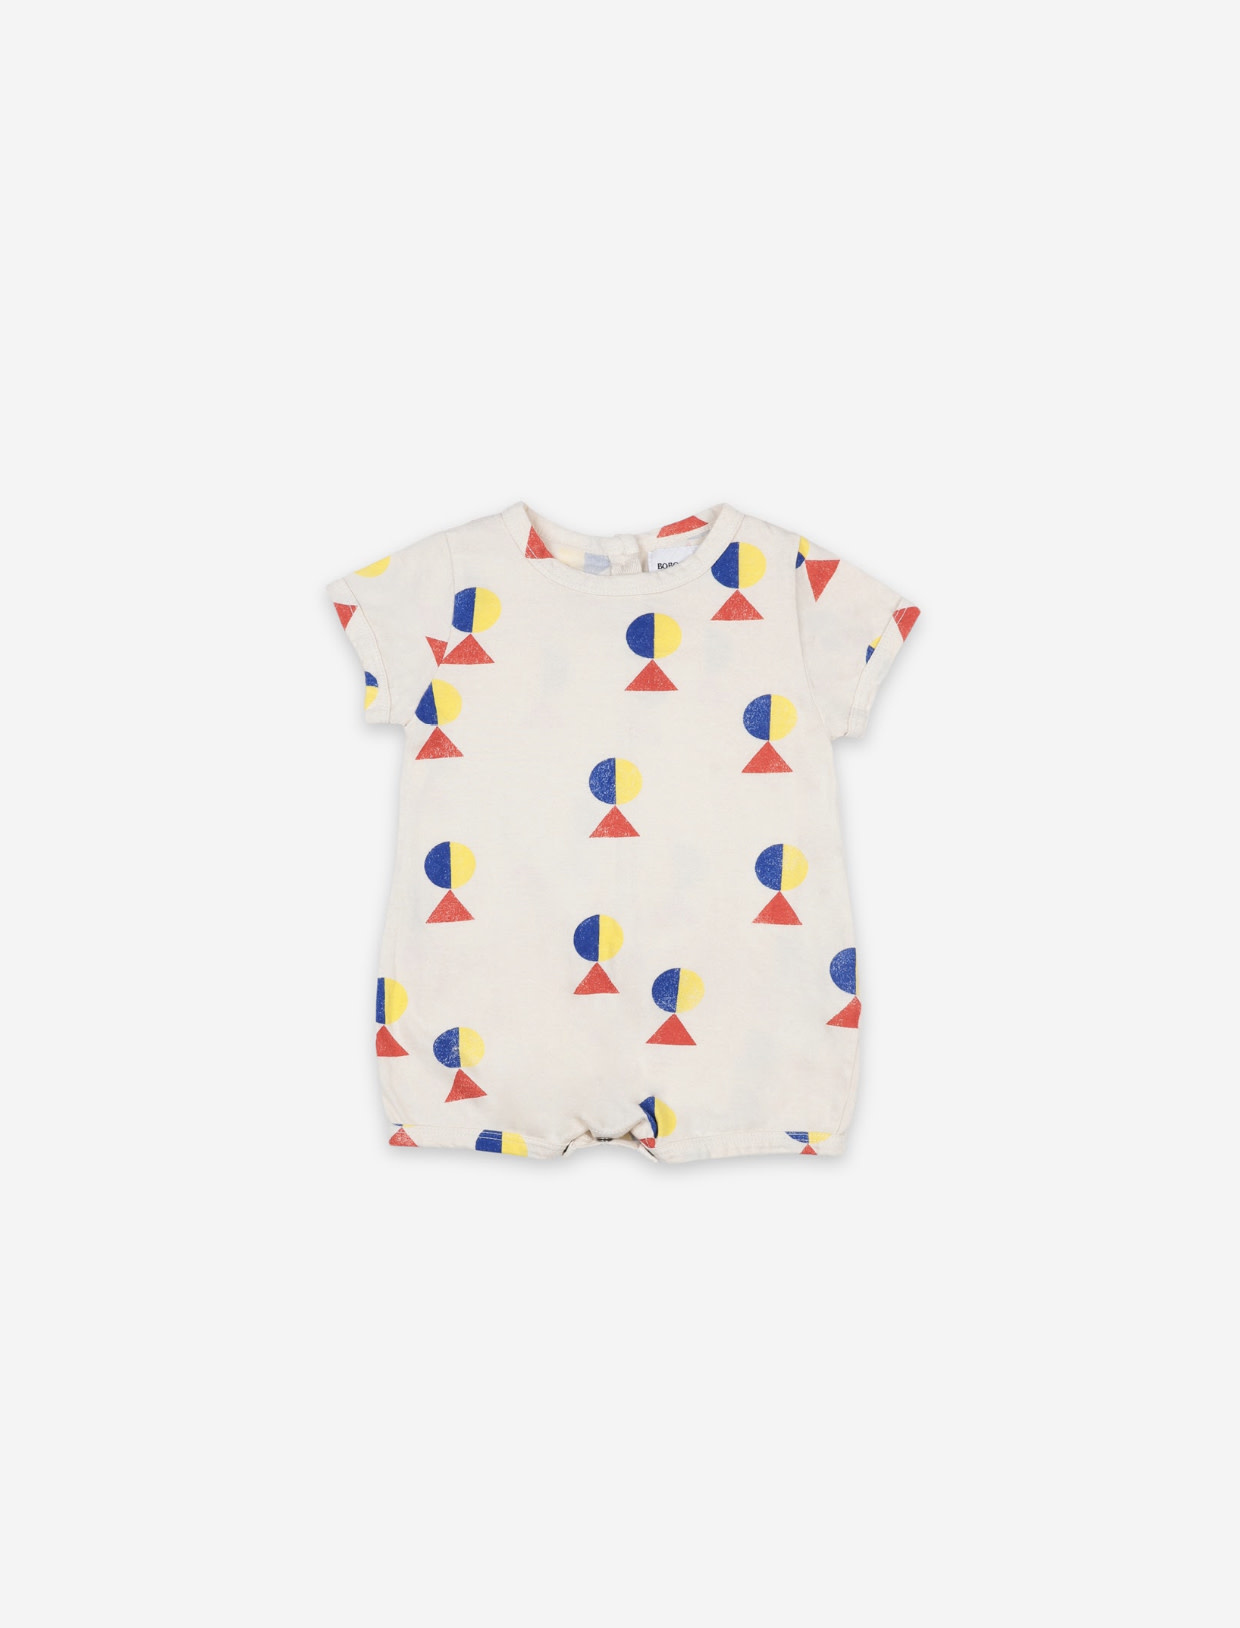 BOBO CHOSES Geometric All Over Baby Playsuit